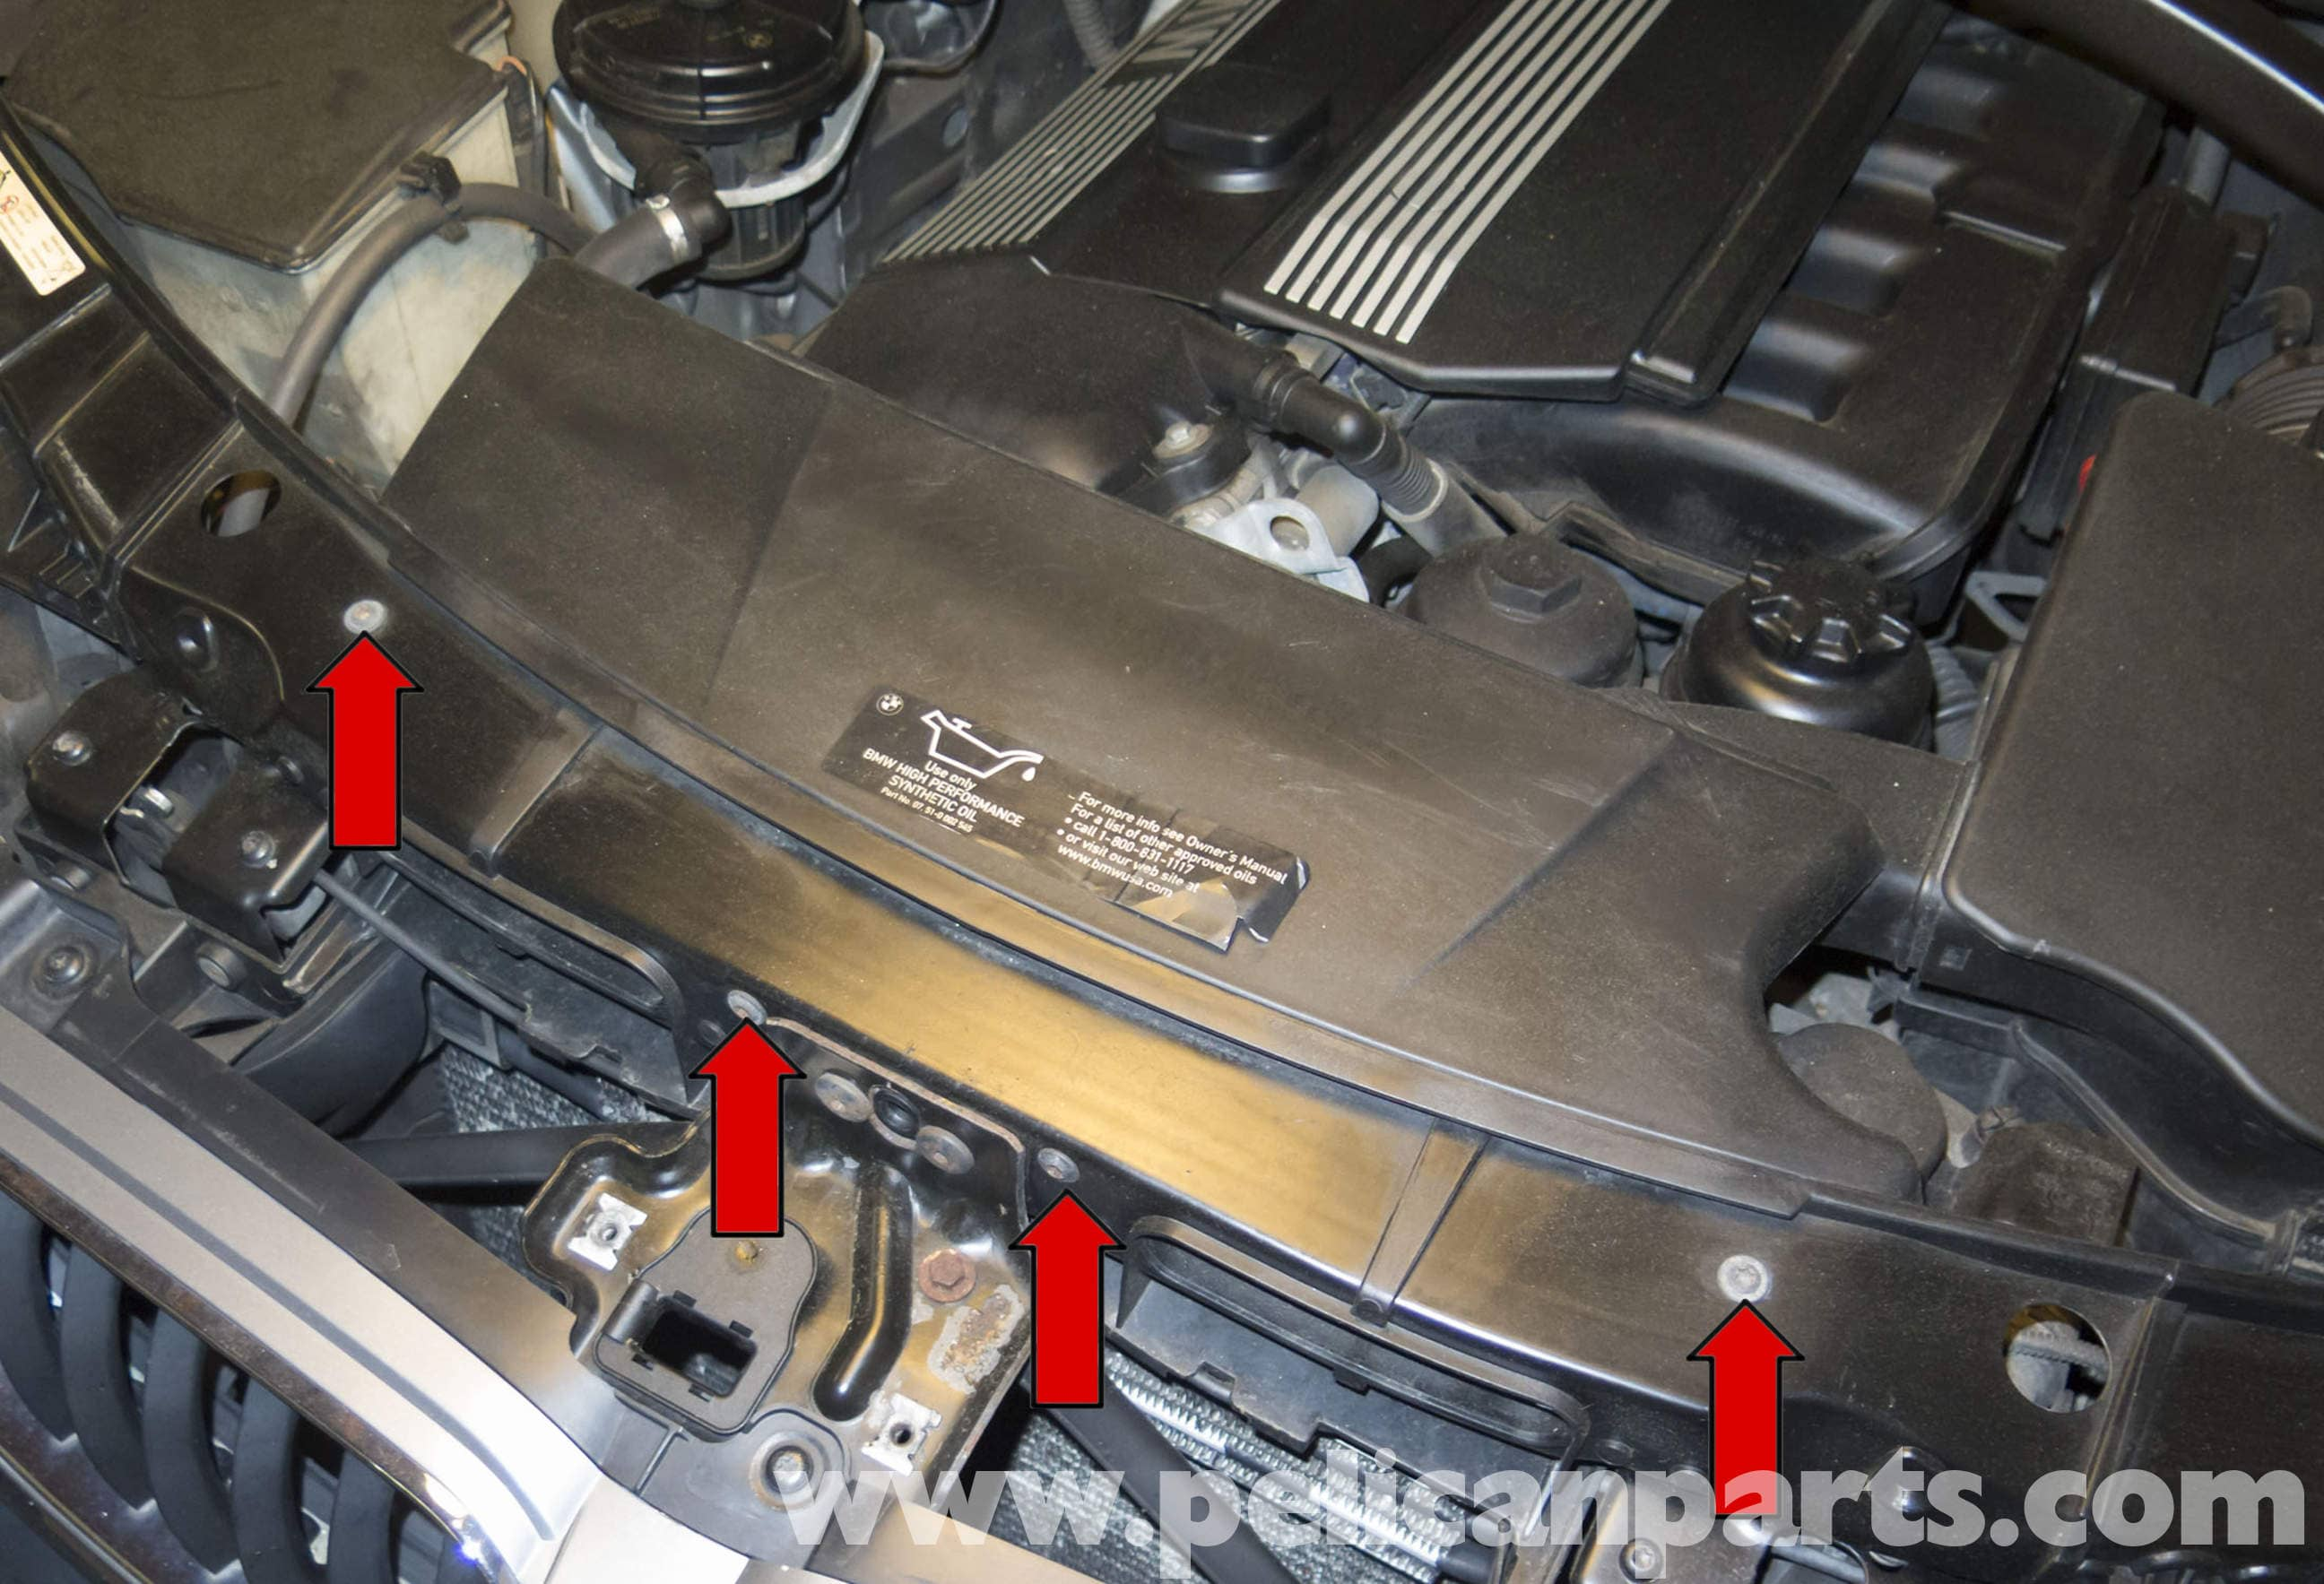 2004 Bmw X3 Engine Diagram Wiring Diagrams 325i Pelican Technical Article M54 6 Cylinder Drive Rh Pelicanparts Com 2003